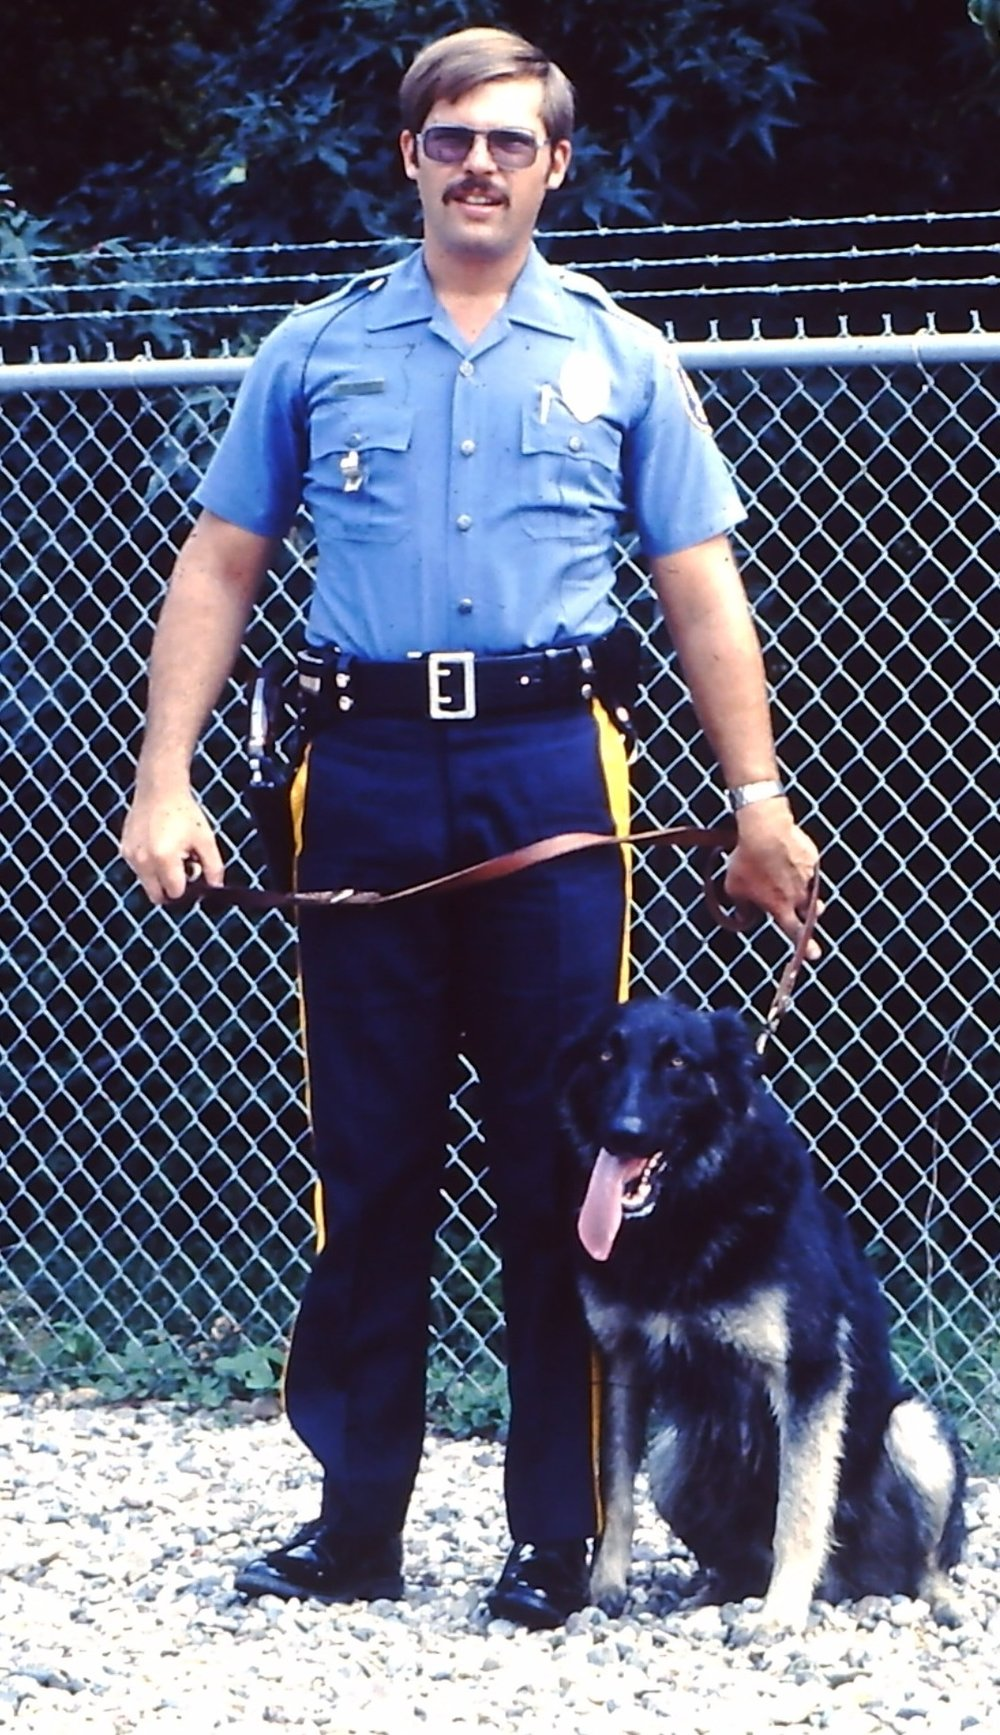 PO Dwight Yeager / K-9 Saint